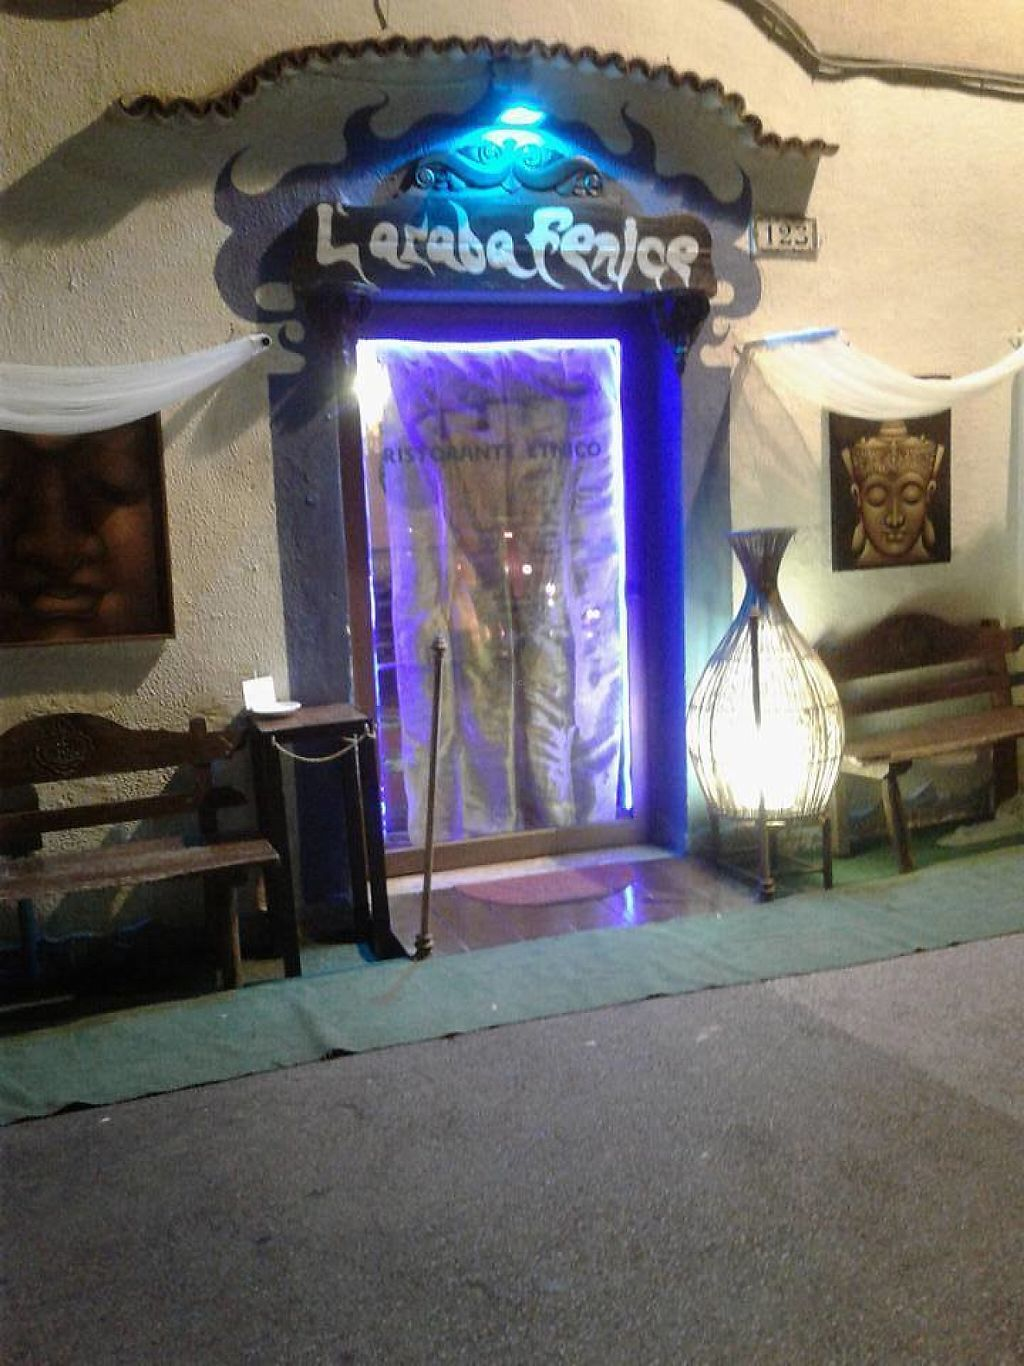 """Photo of L'Araba Fenice  by <a href=""""/members/profile/community5"""">community5</a> <br/>L'Araba Fenice <br/> May 25, 2017  - <a href='/contact/abuse/image/92746/262502'>Report</a>"""